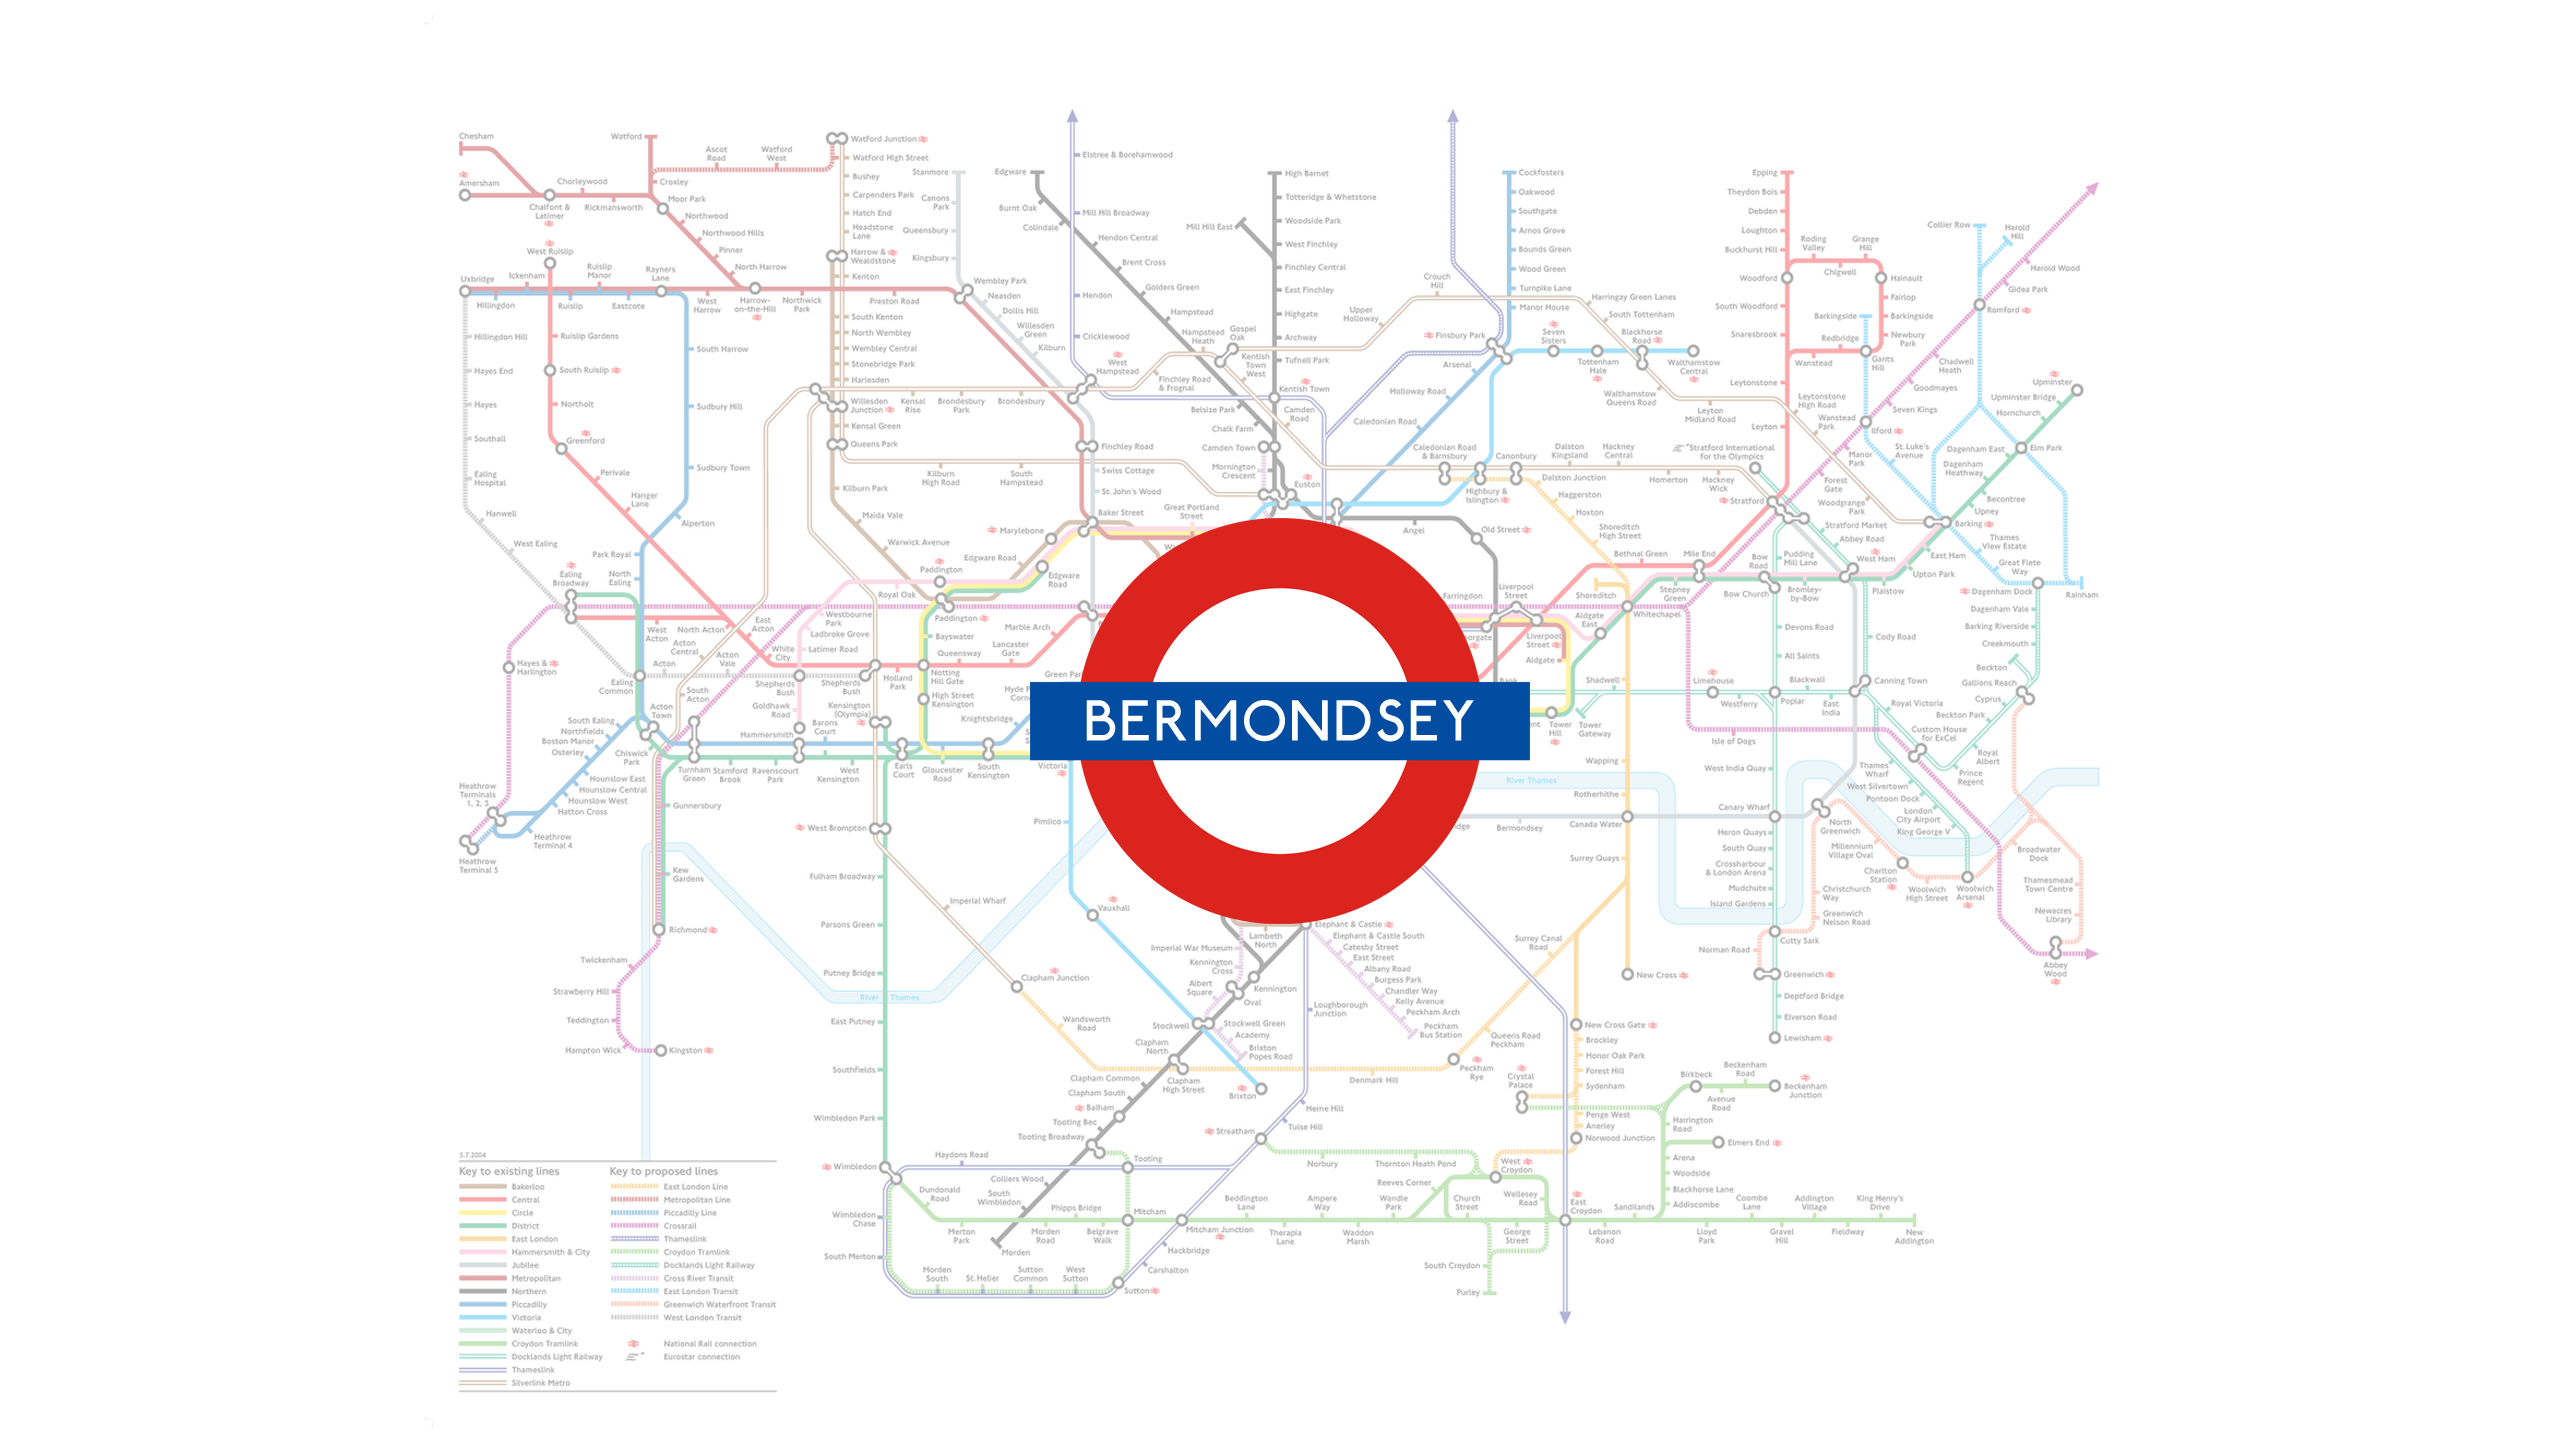 Bermondsey (Map)